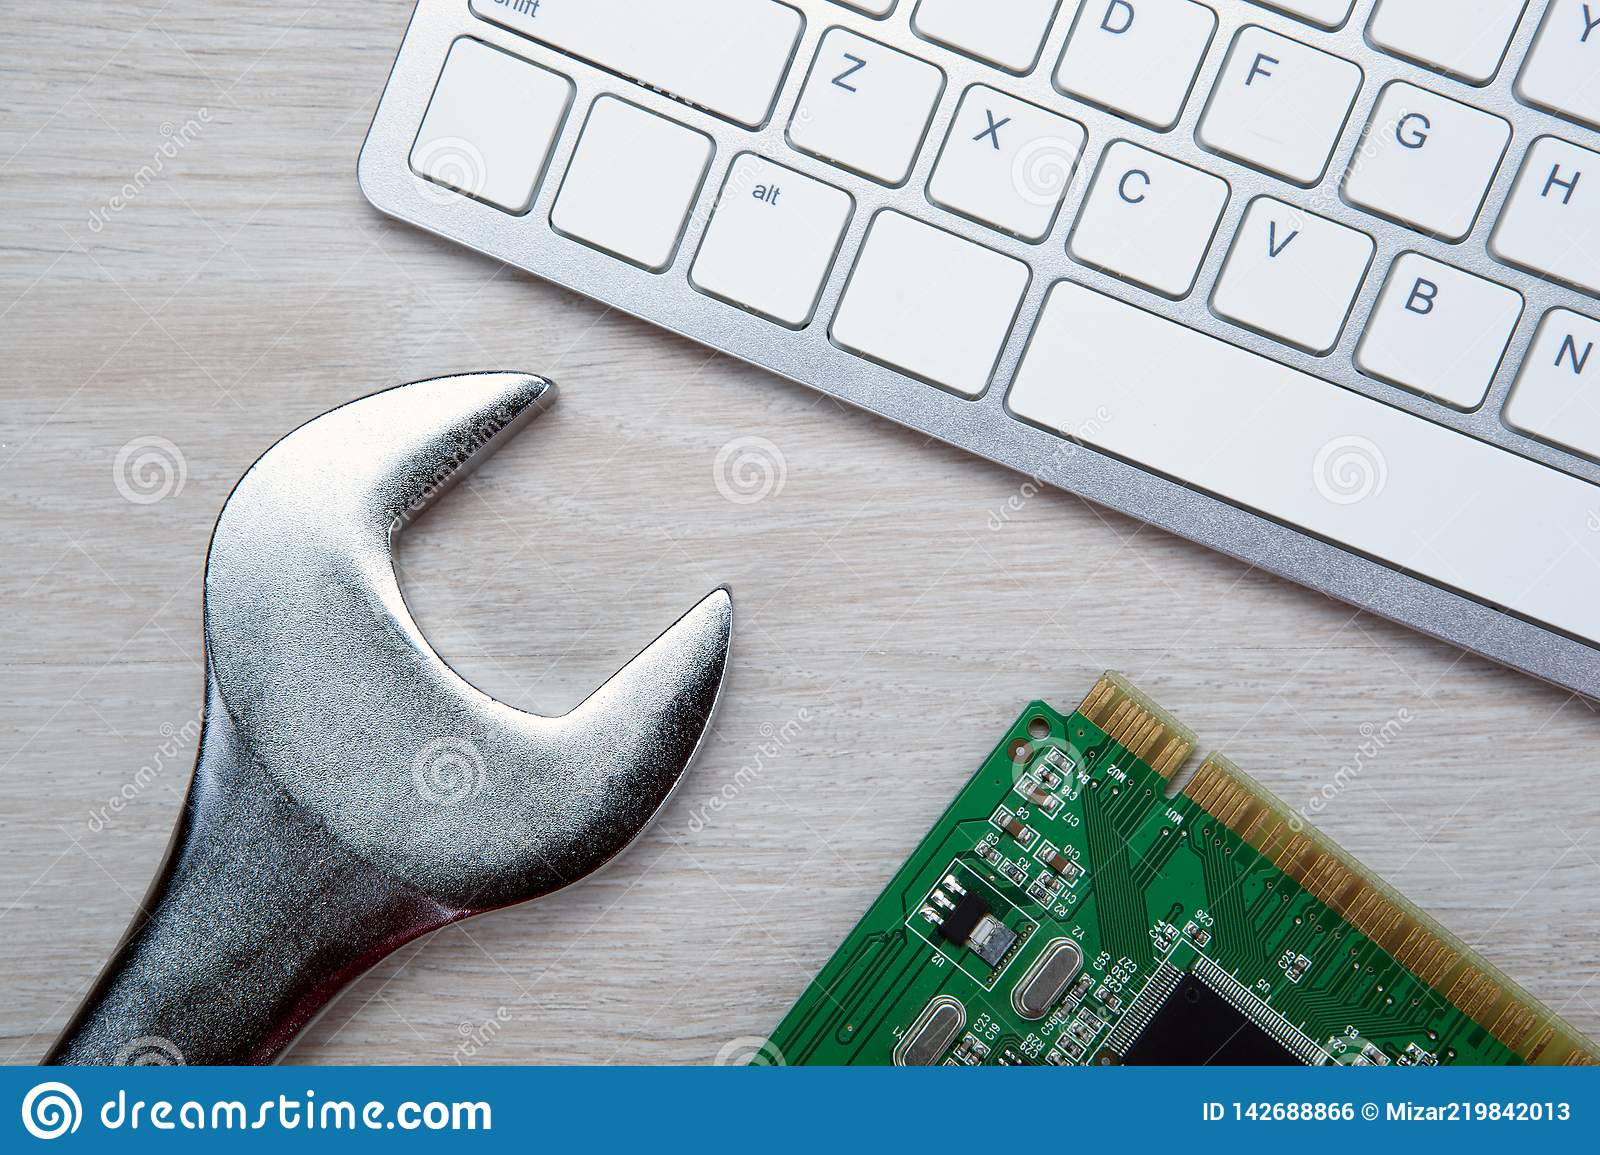 Big Wrench And A Computer Keyboard And Computer Parts Stock Photo Image Of Digit Information 142688866